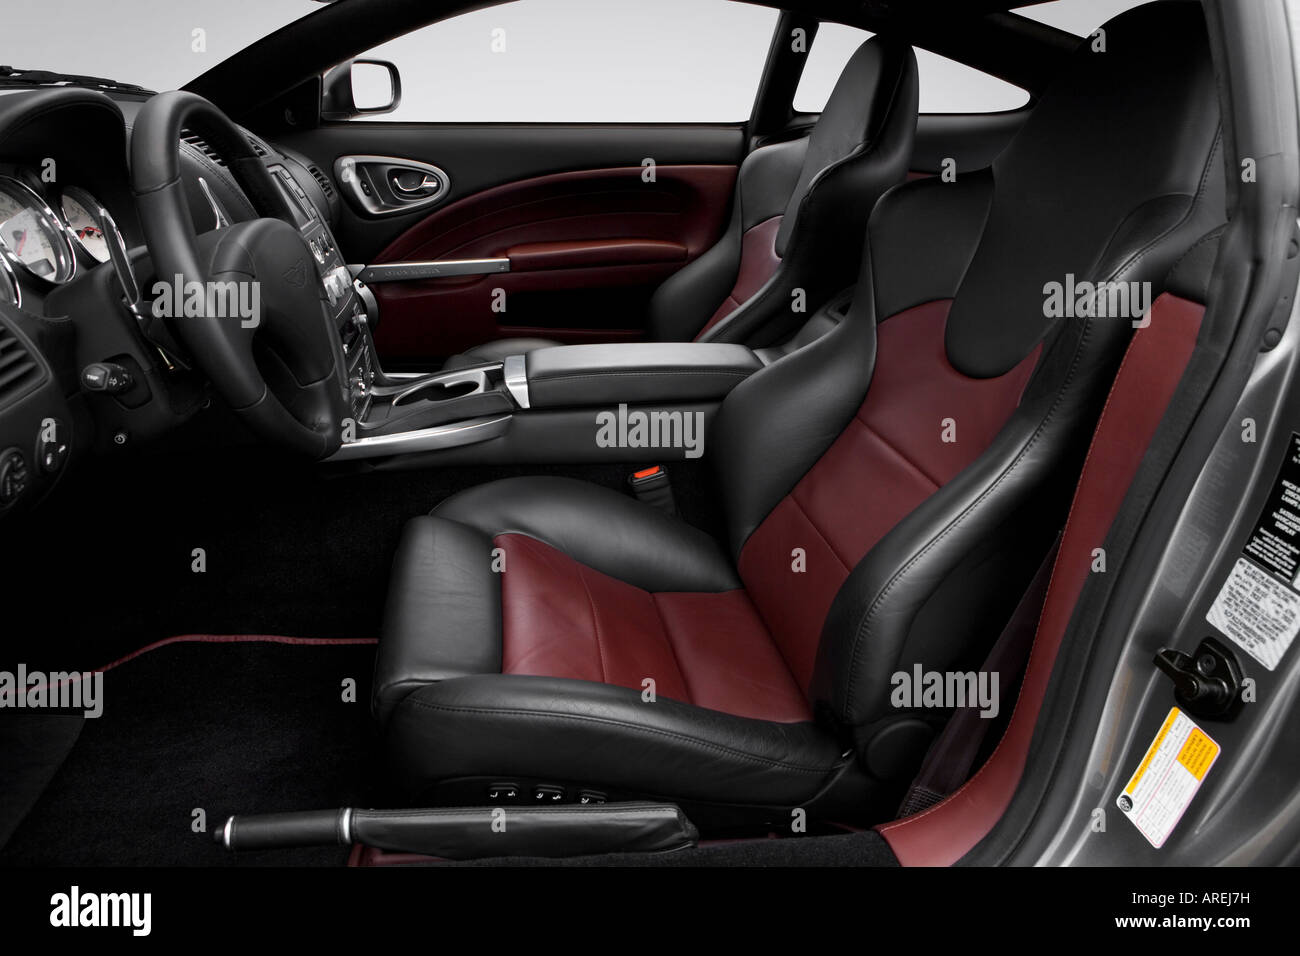 2006 aston martin v12 vanquish s in silver - front seats stock photo